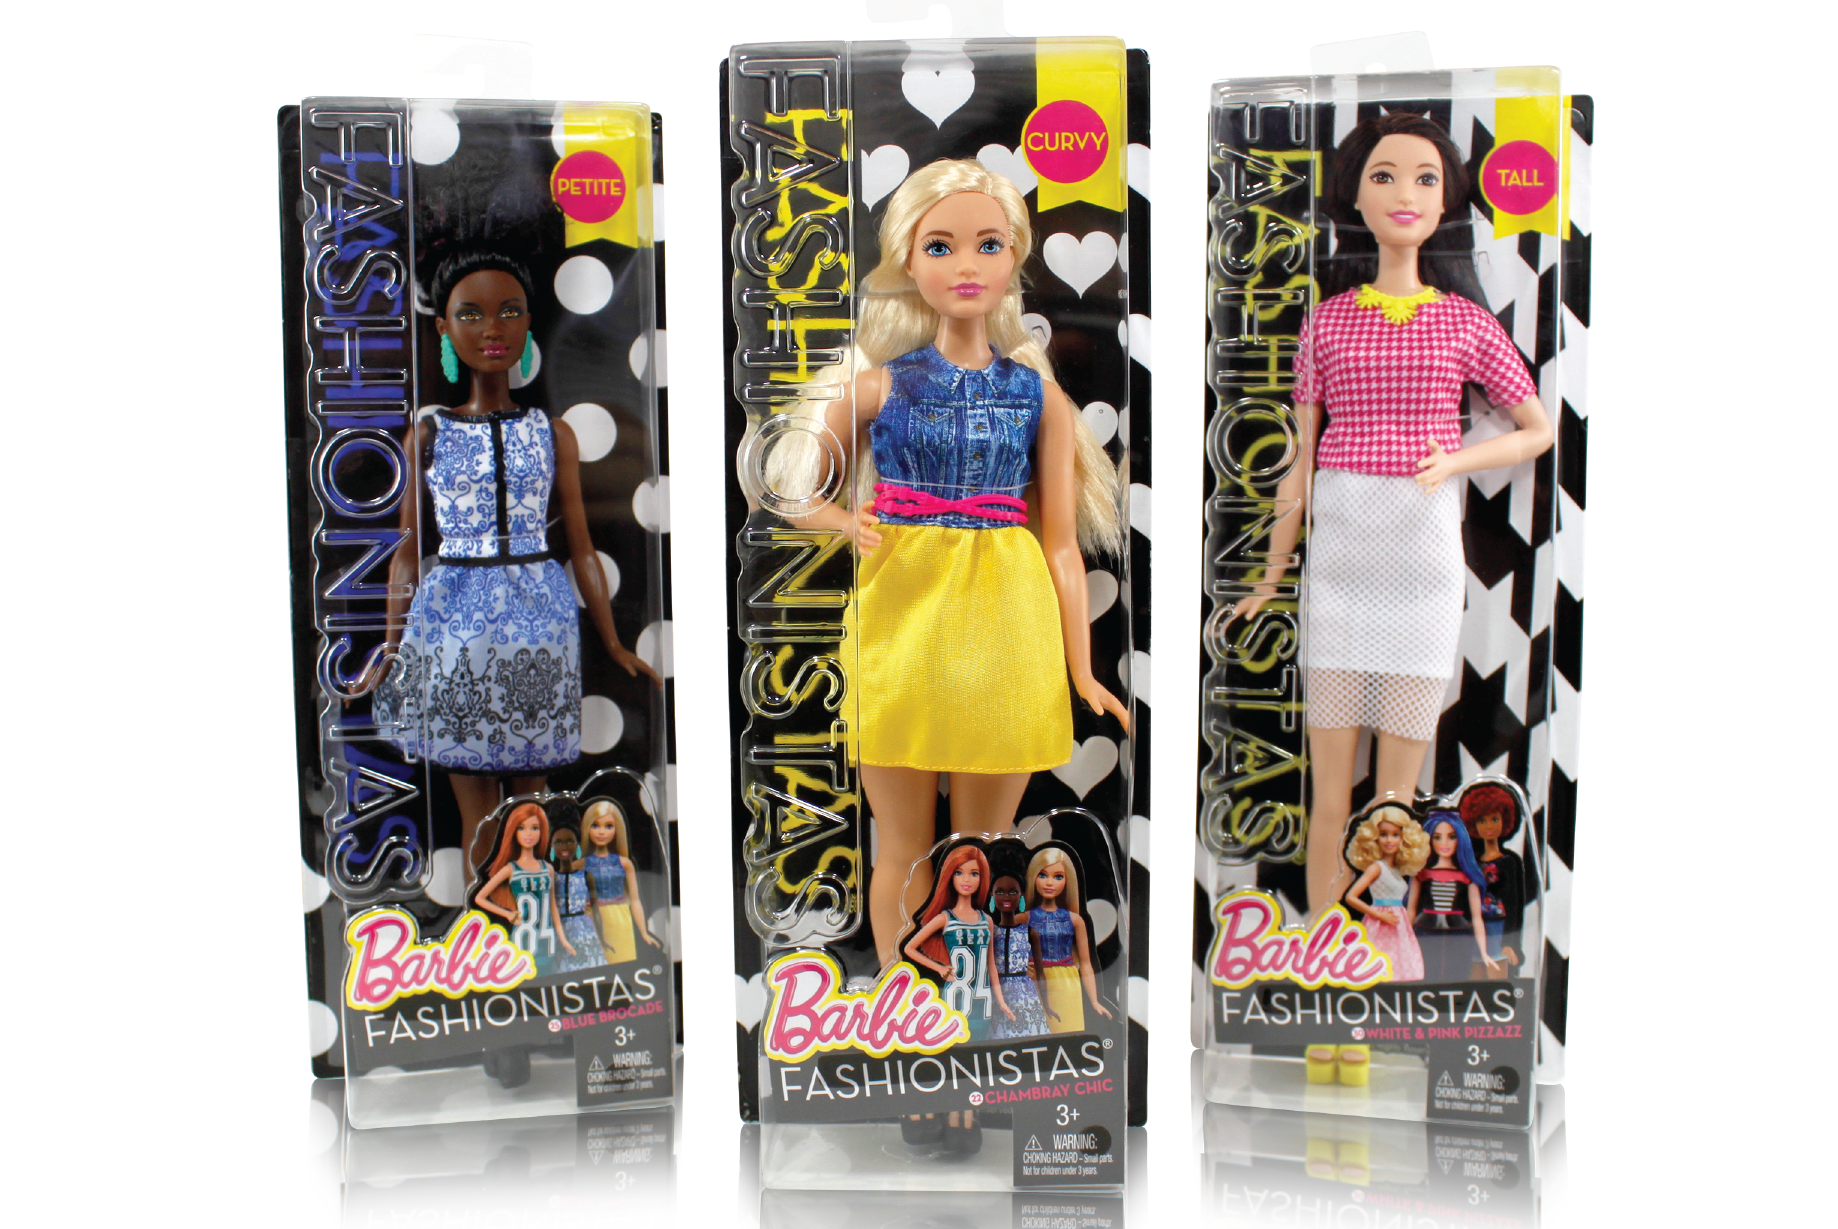 Was lead designer on Project DAWN (Introduction of New Body Types for Barbie). Exploring pattern options for each doll, exploring communicaton for body type and co-art directing final photo shoot.